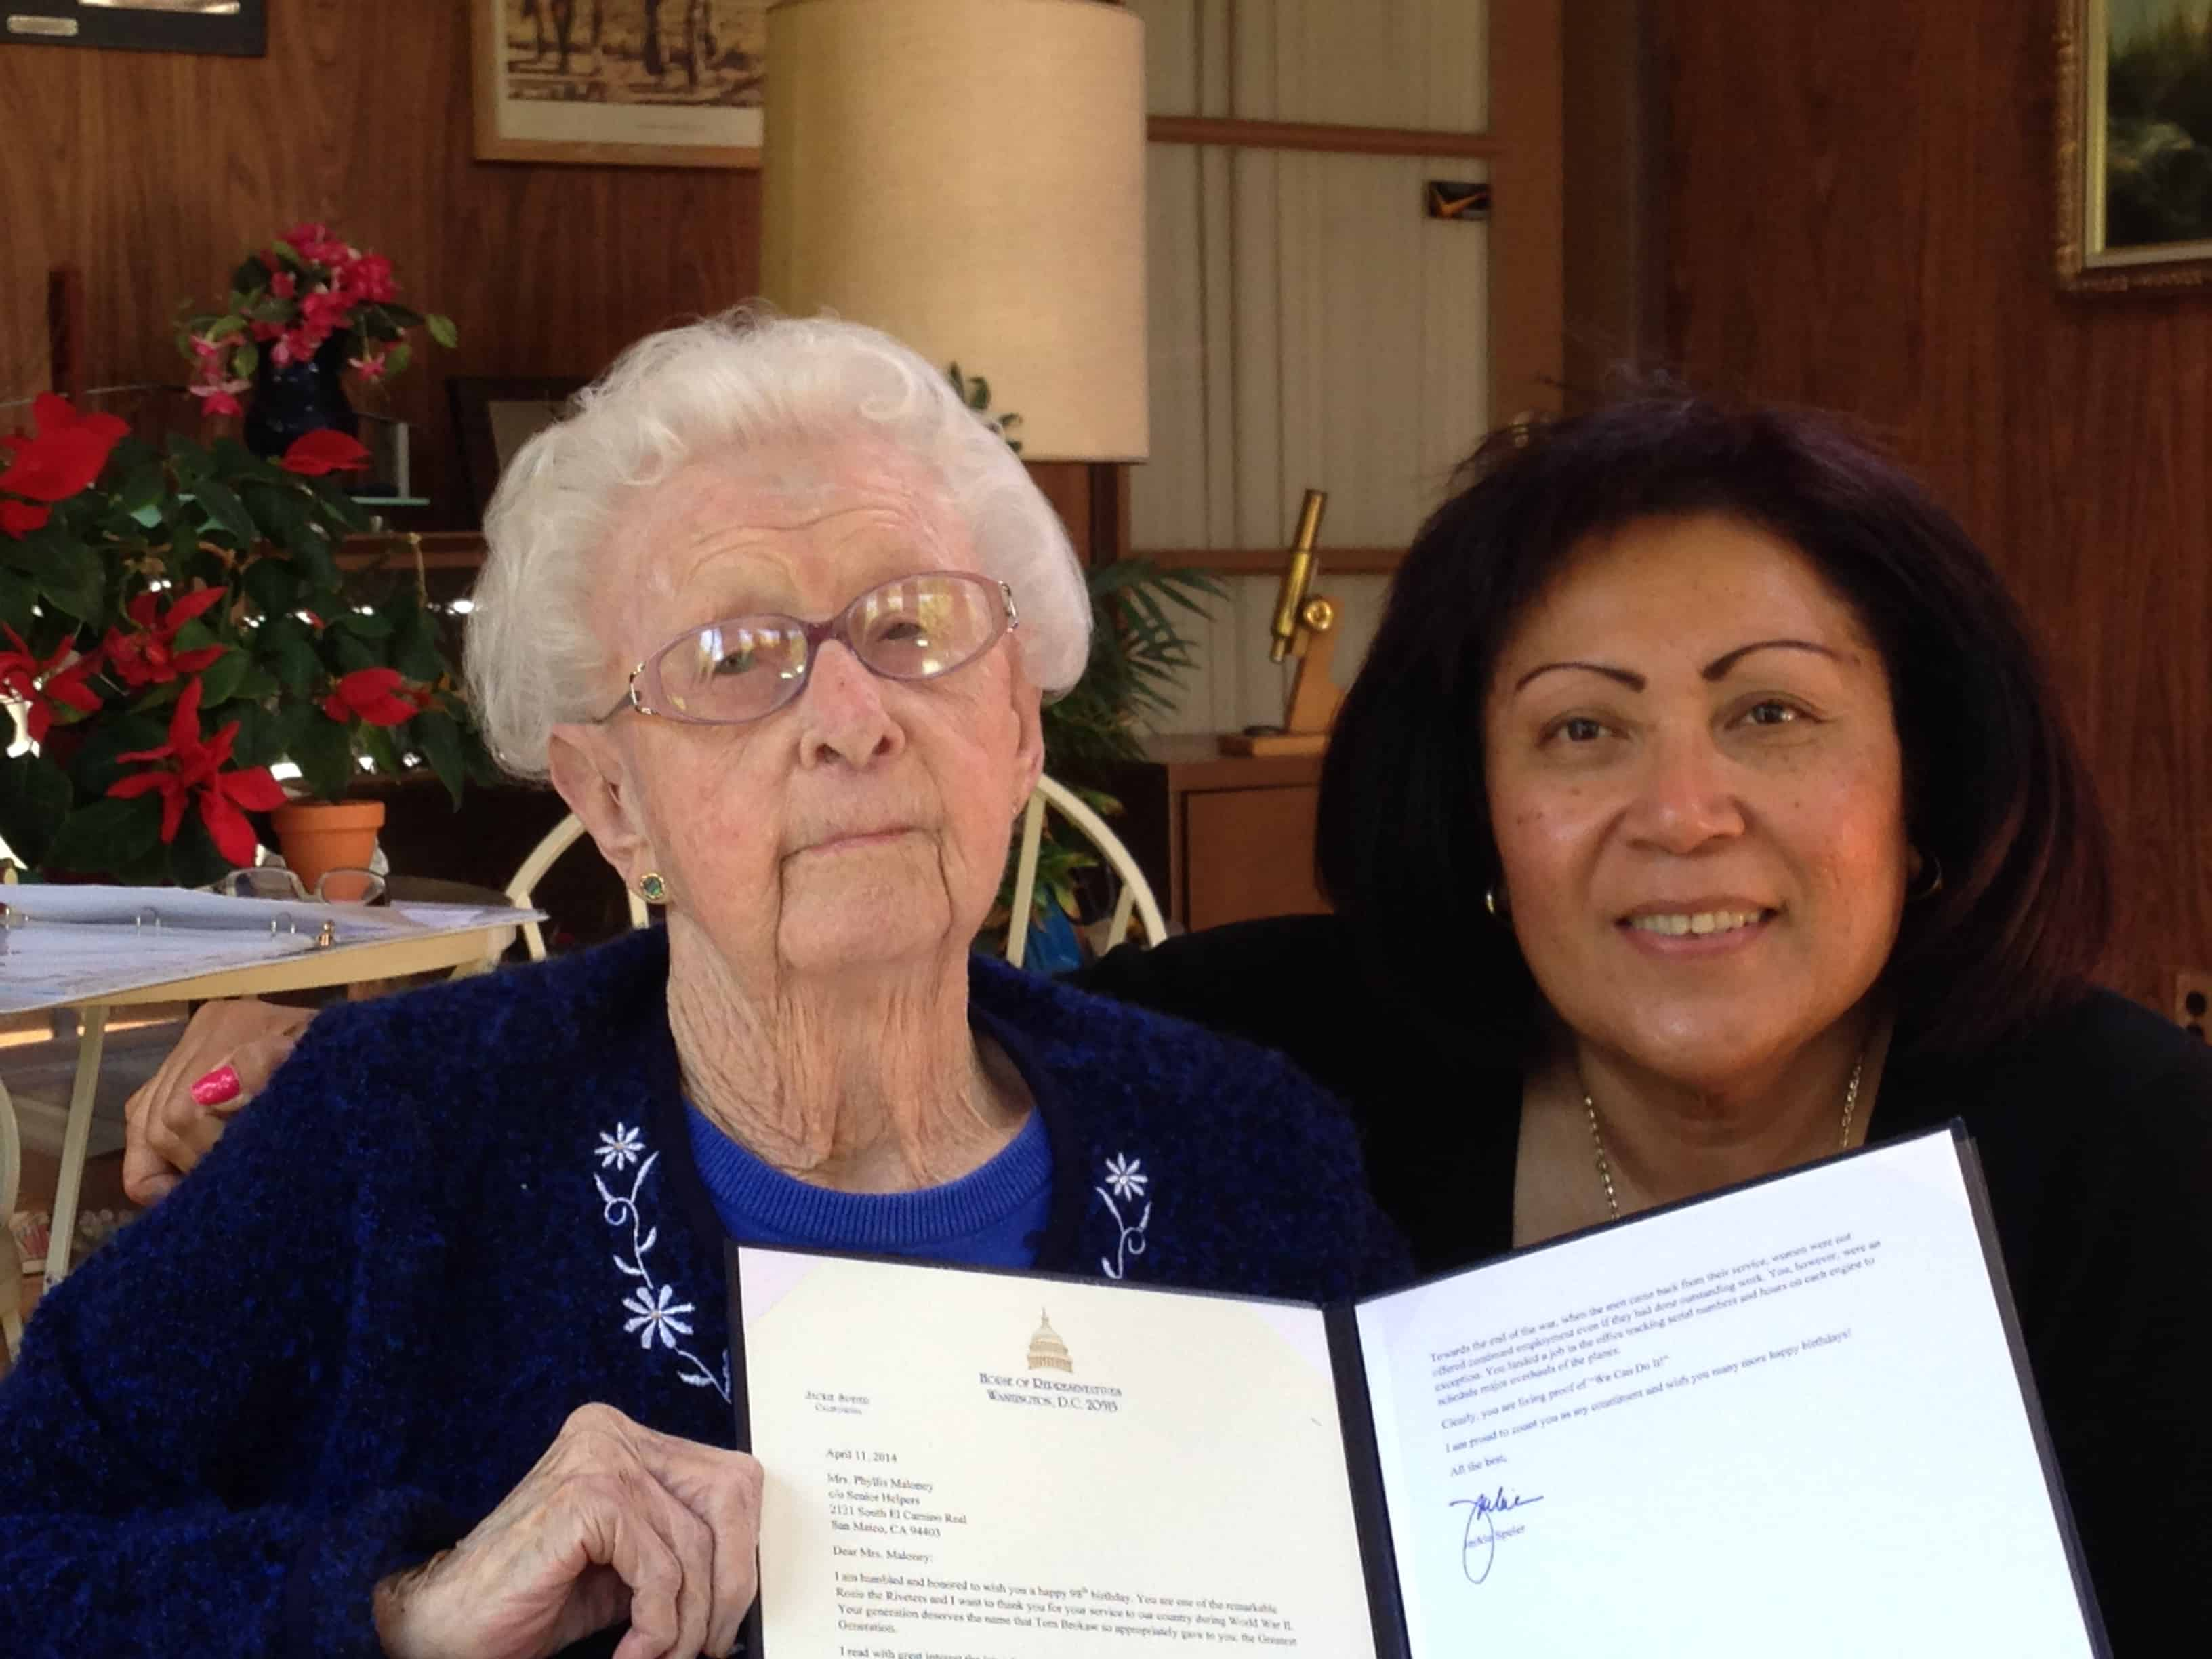 One of our clients, Phyllis, was recognized by our US representative to congress (Jackie Speier) for her work on airplanes during WWII. Phyllis is holding the official letter, on stationary from the US House of Representativesalong with her caregiver, Pafia.